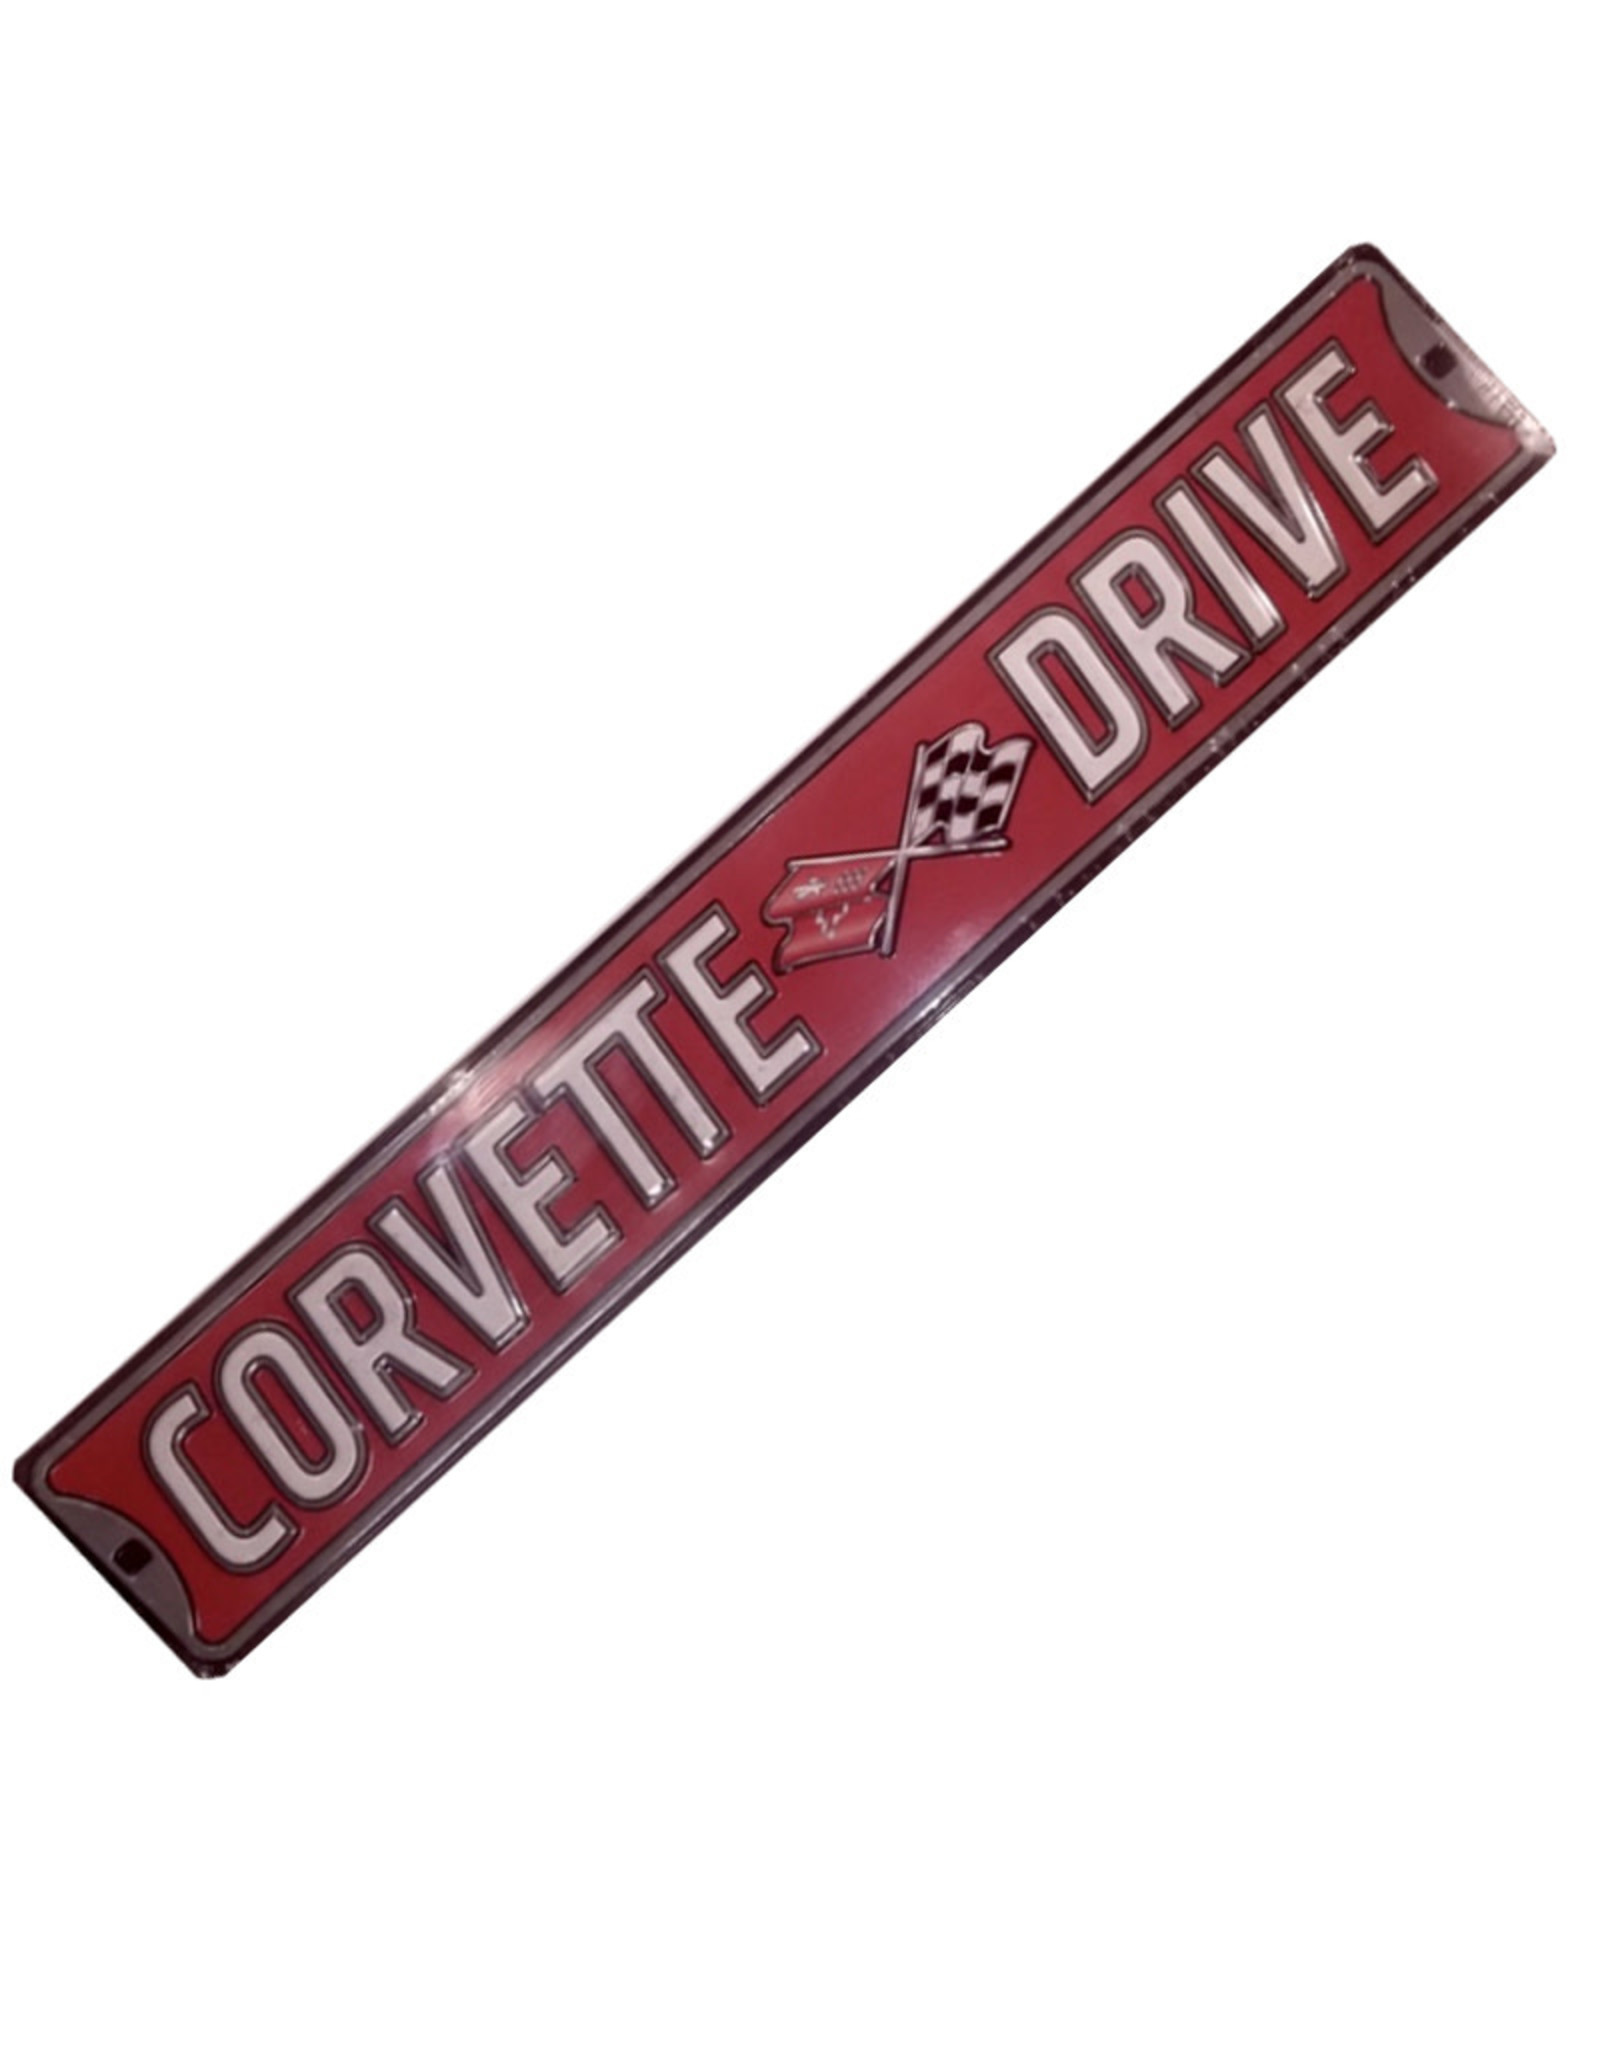 Corvette ( Embossed metal plate ) Corvette drive